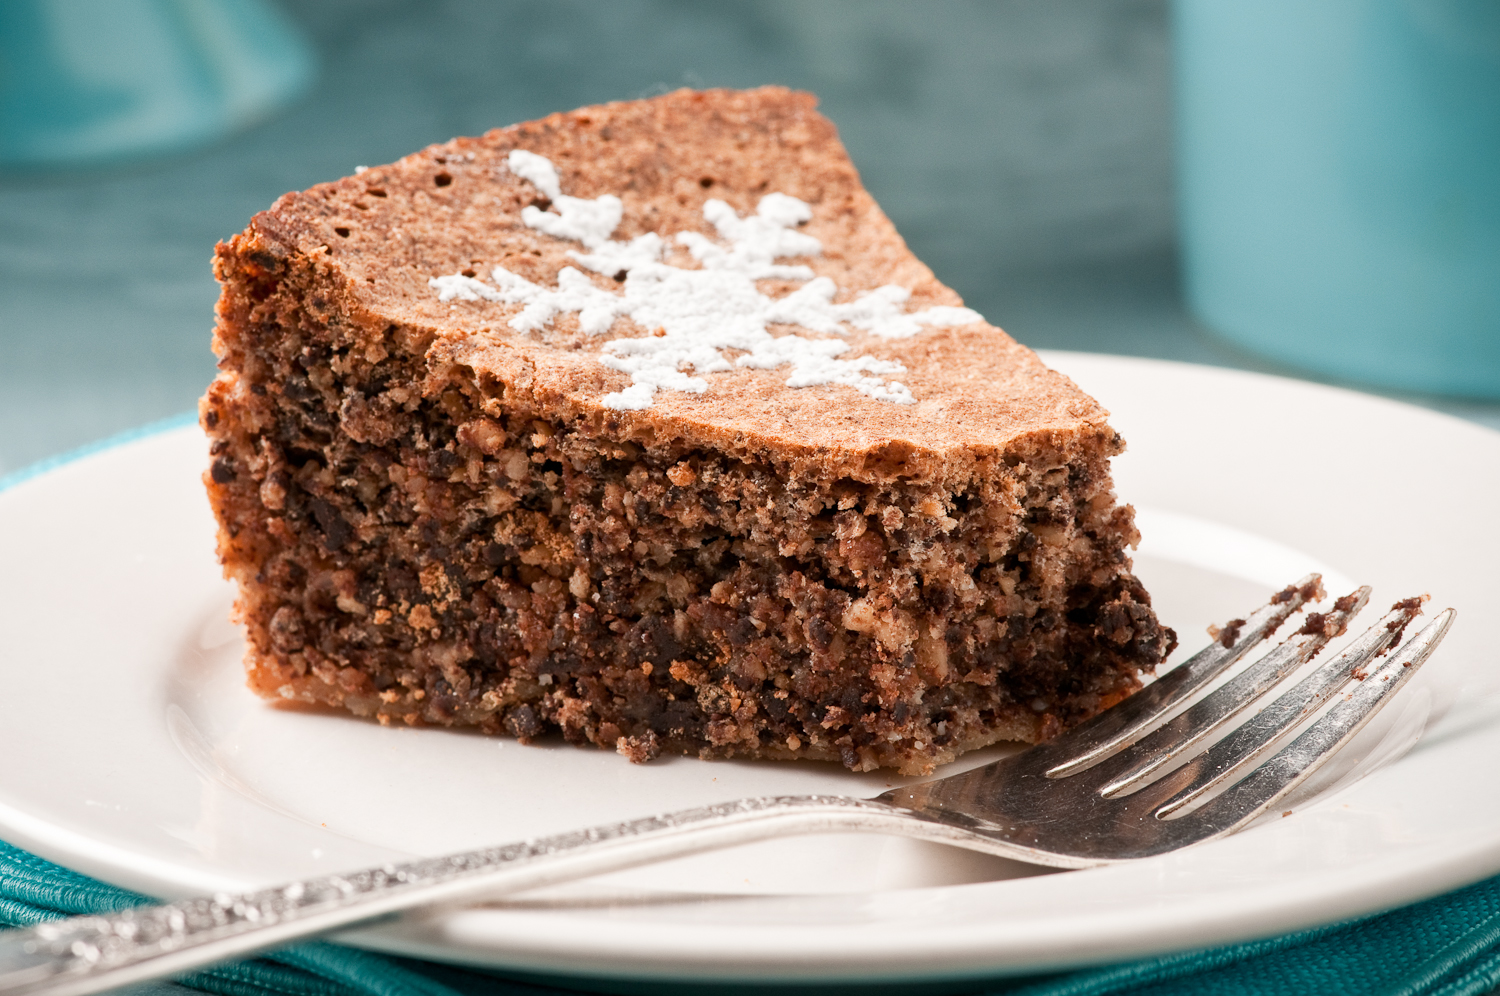 slice of chocolate hazelnut torte